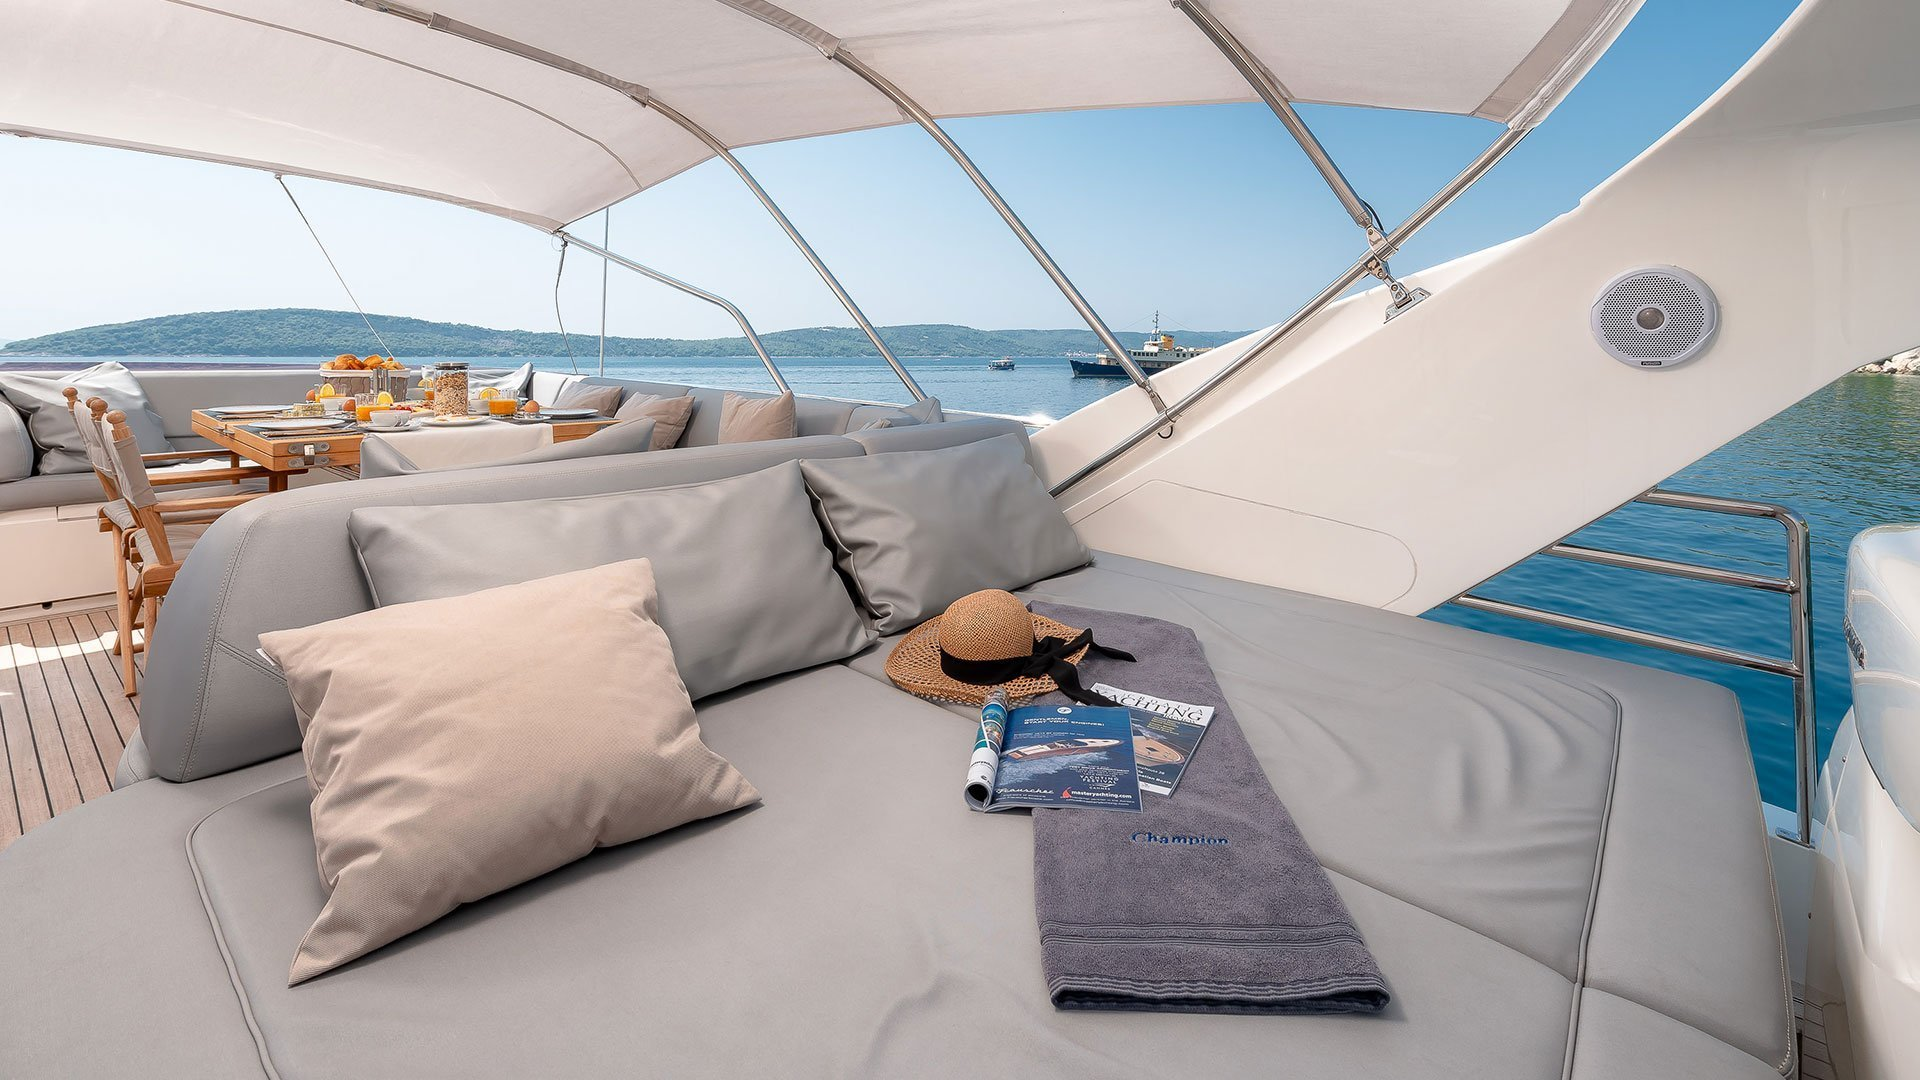 lounge beds on top of yacht